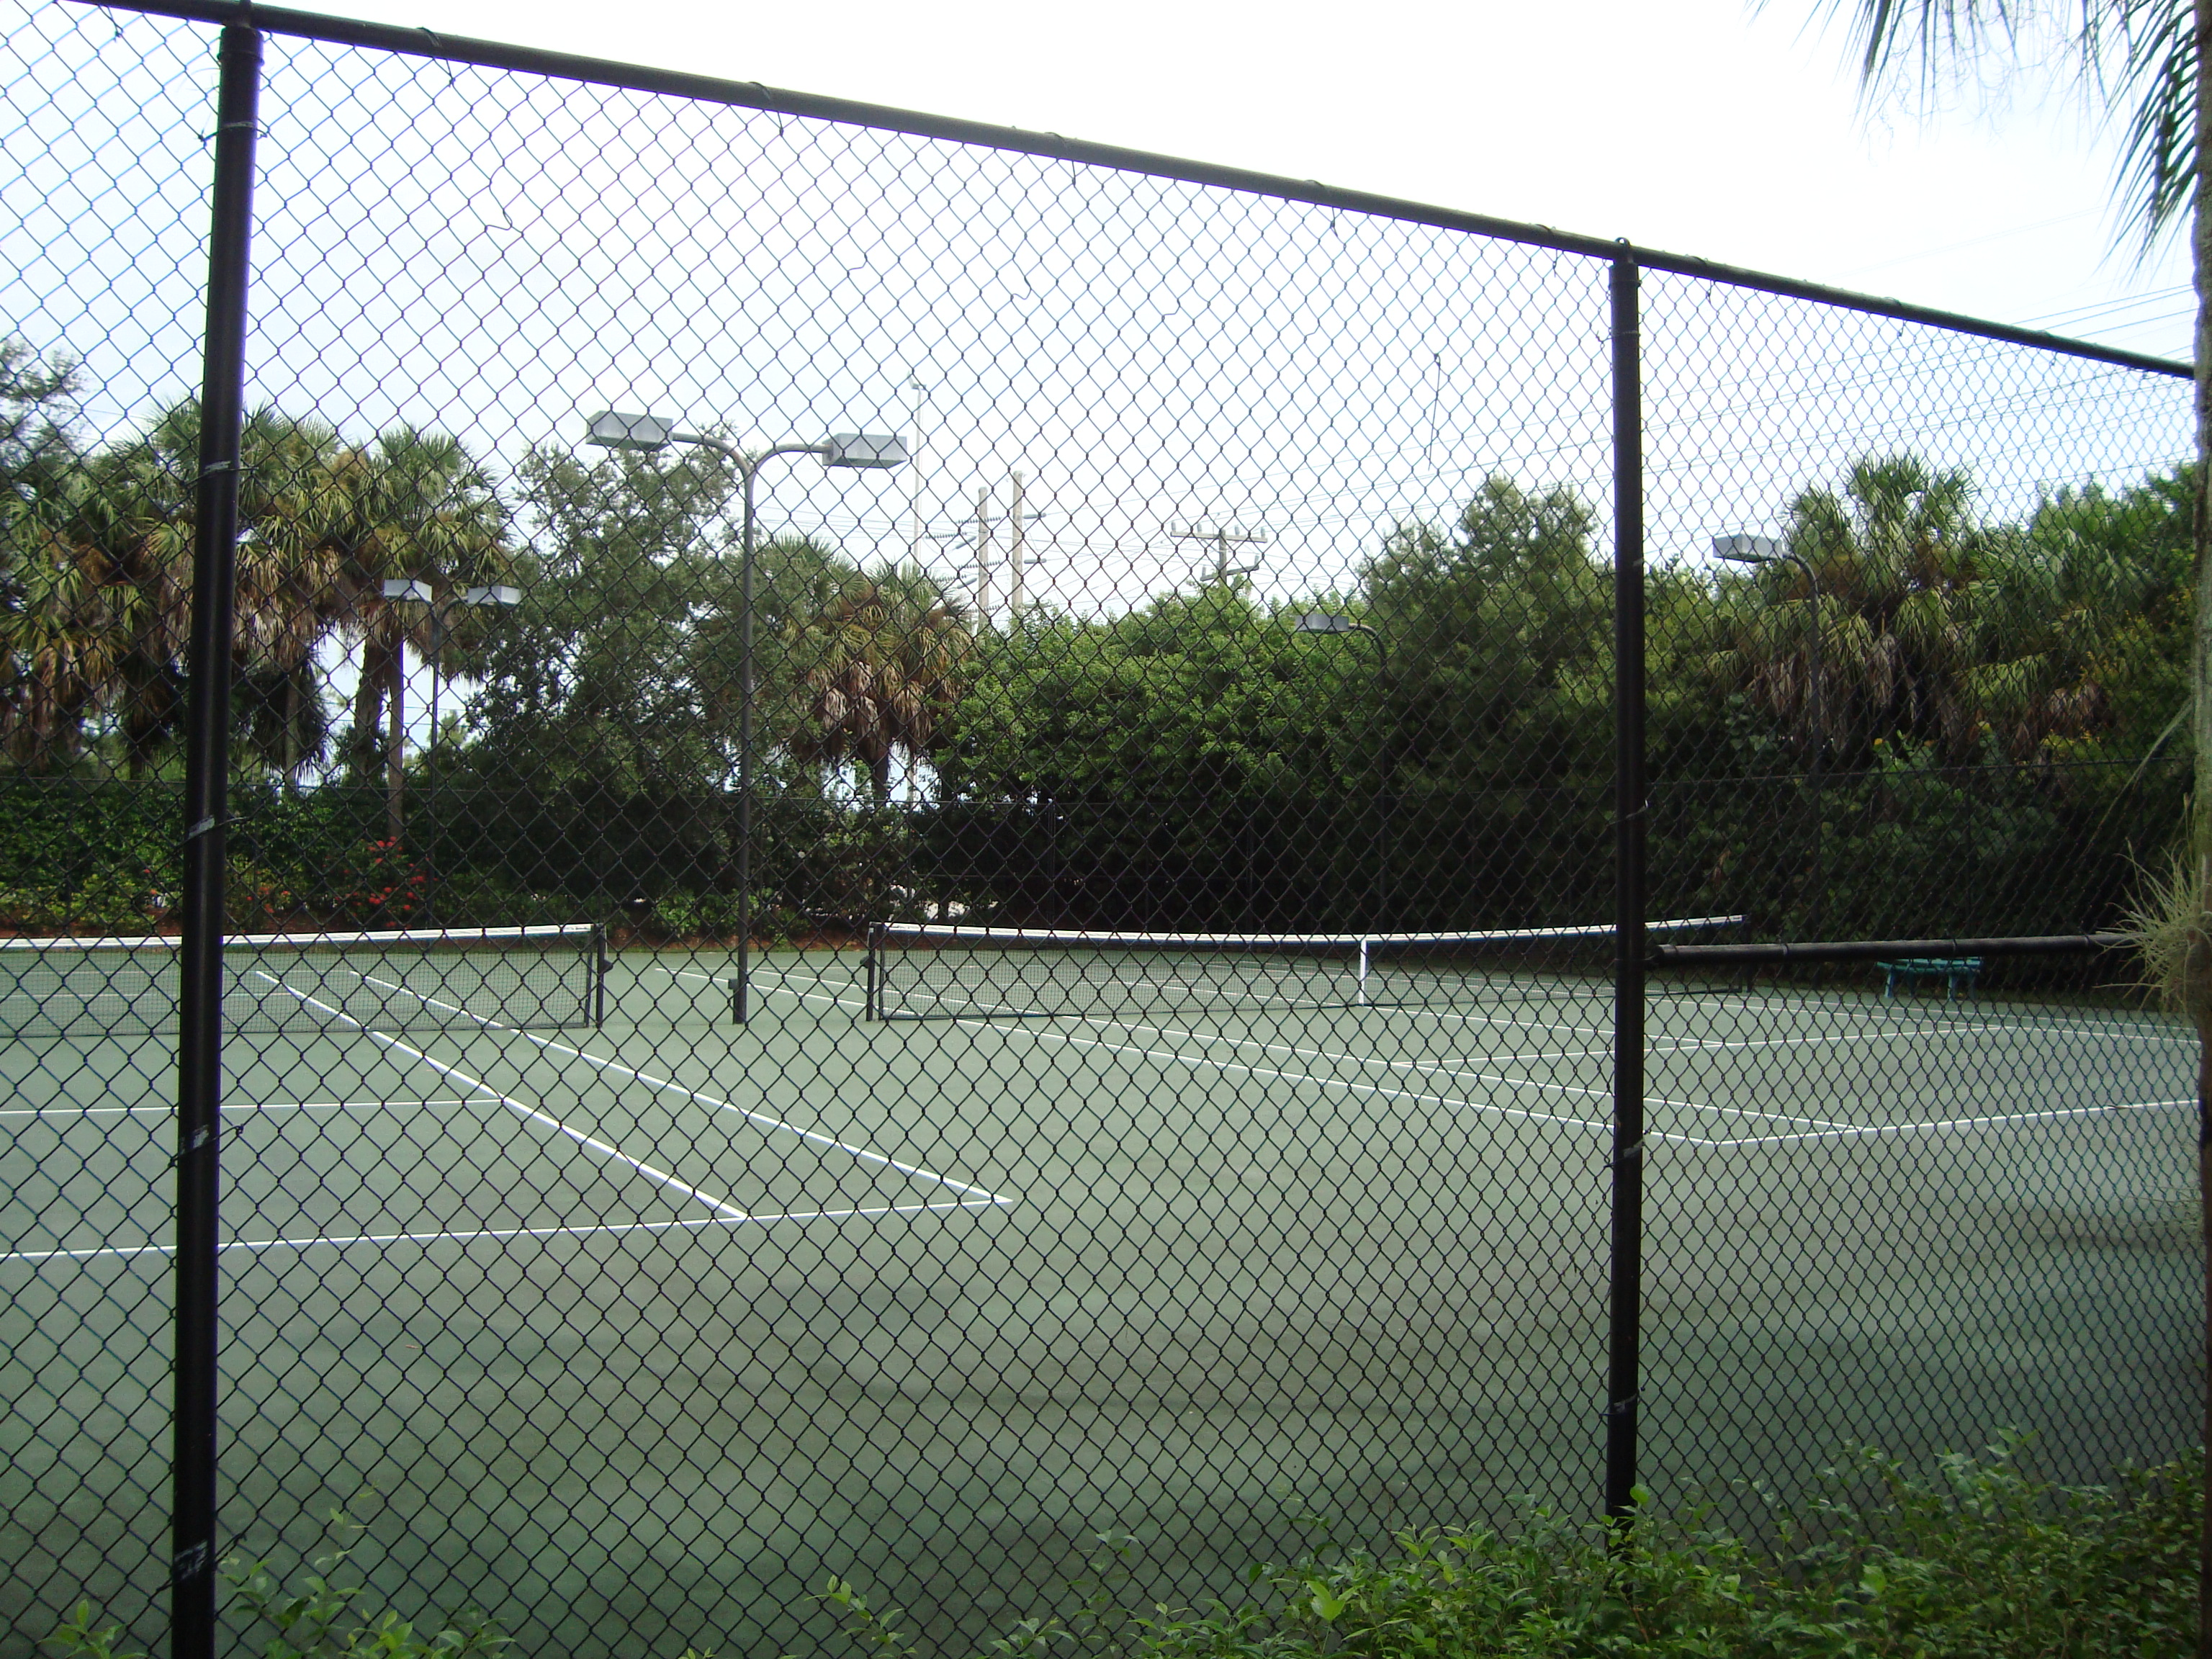 Tennis Courts at Orchards in Naples, Florida.